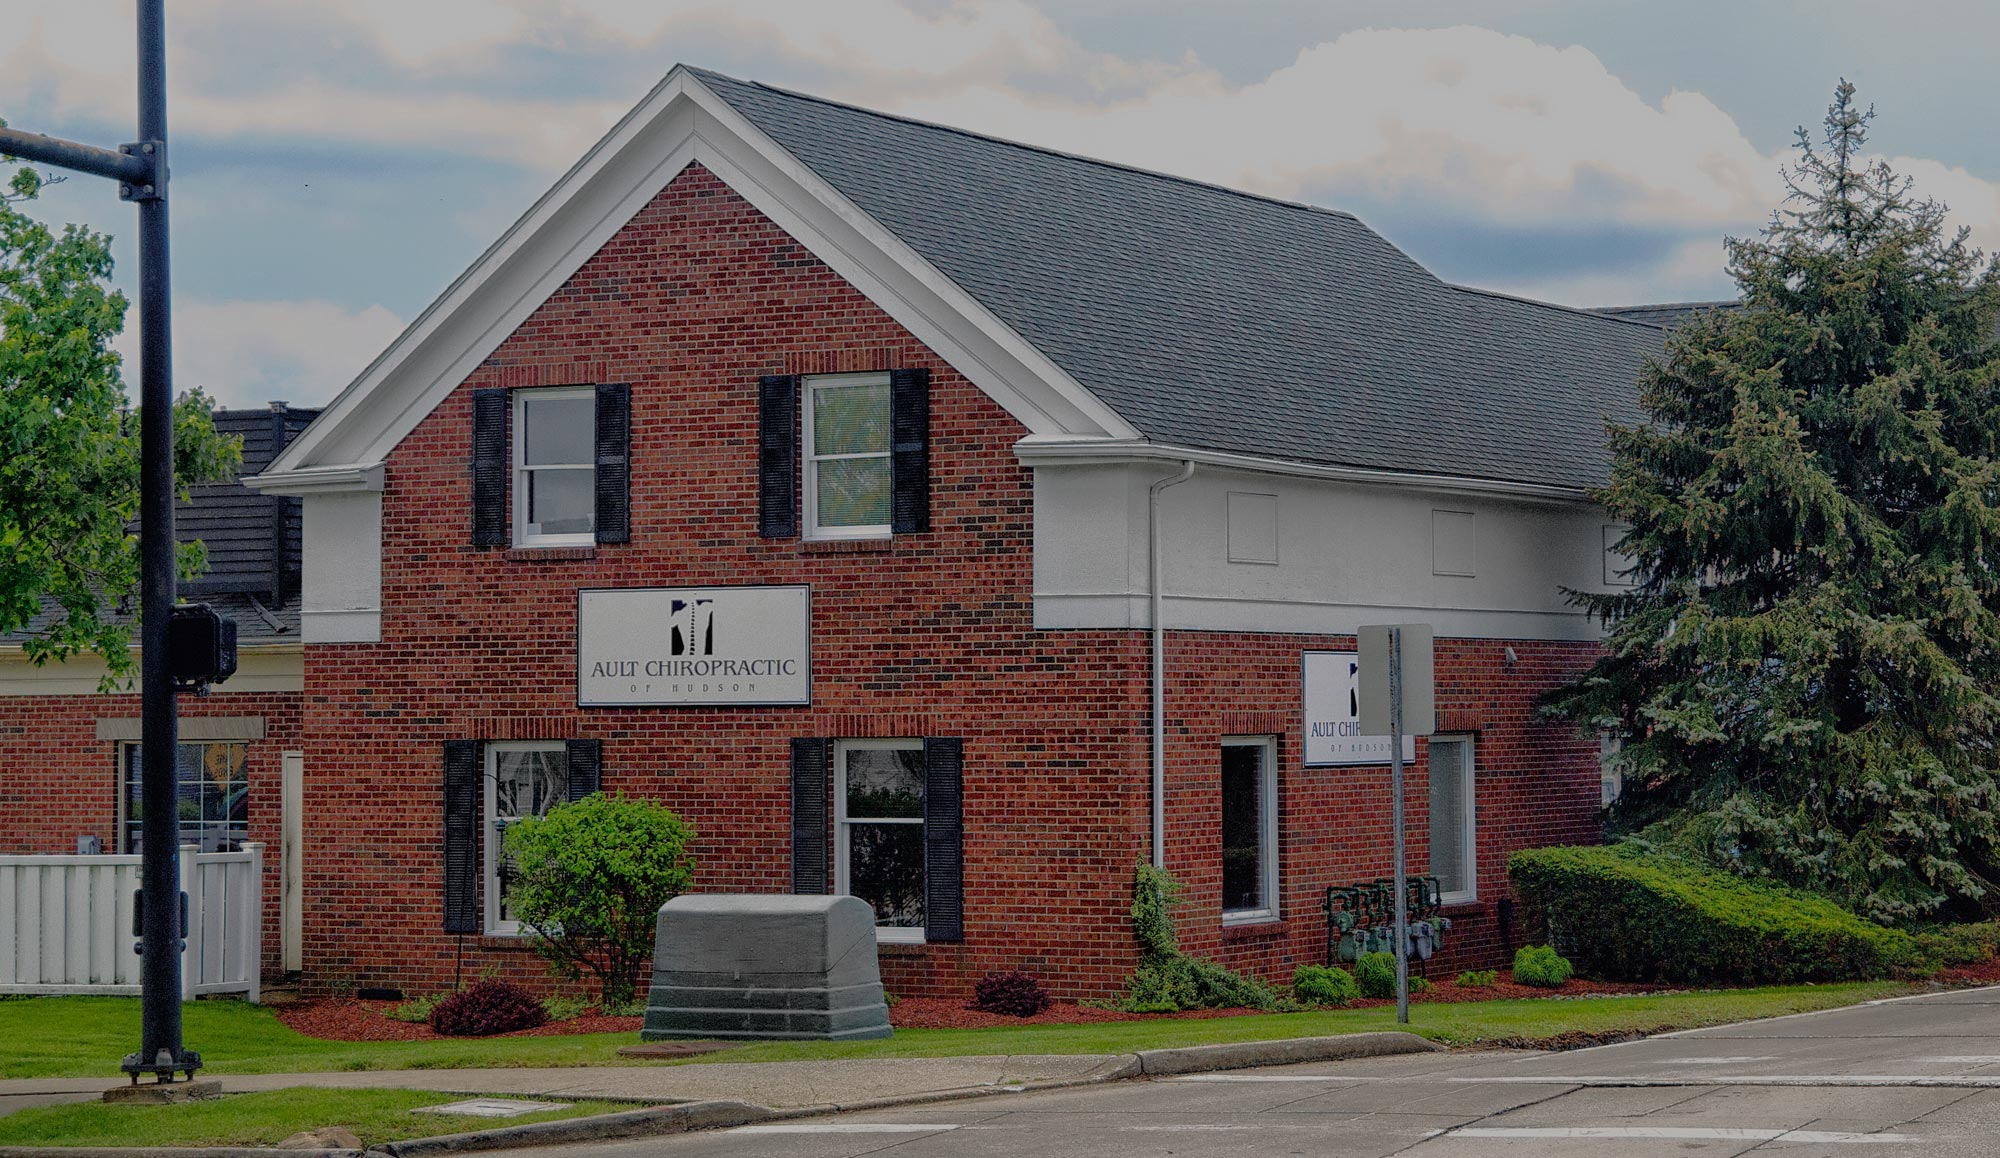 Welcome to <strong>Ault Chiropractic</strong>